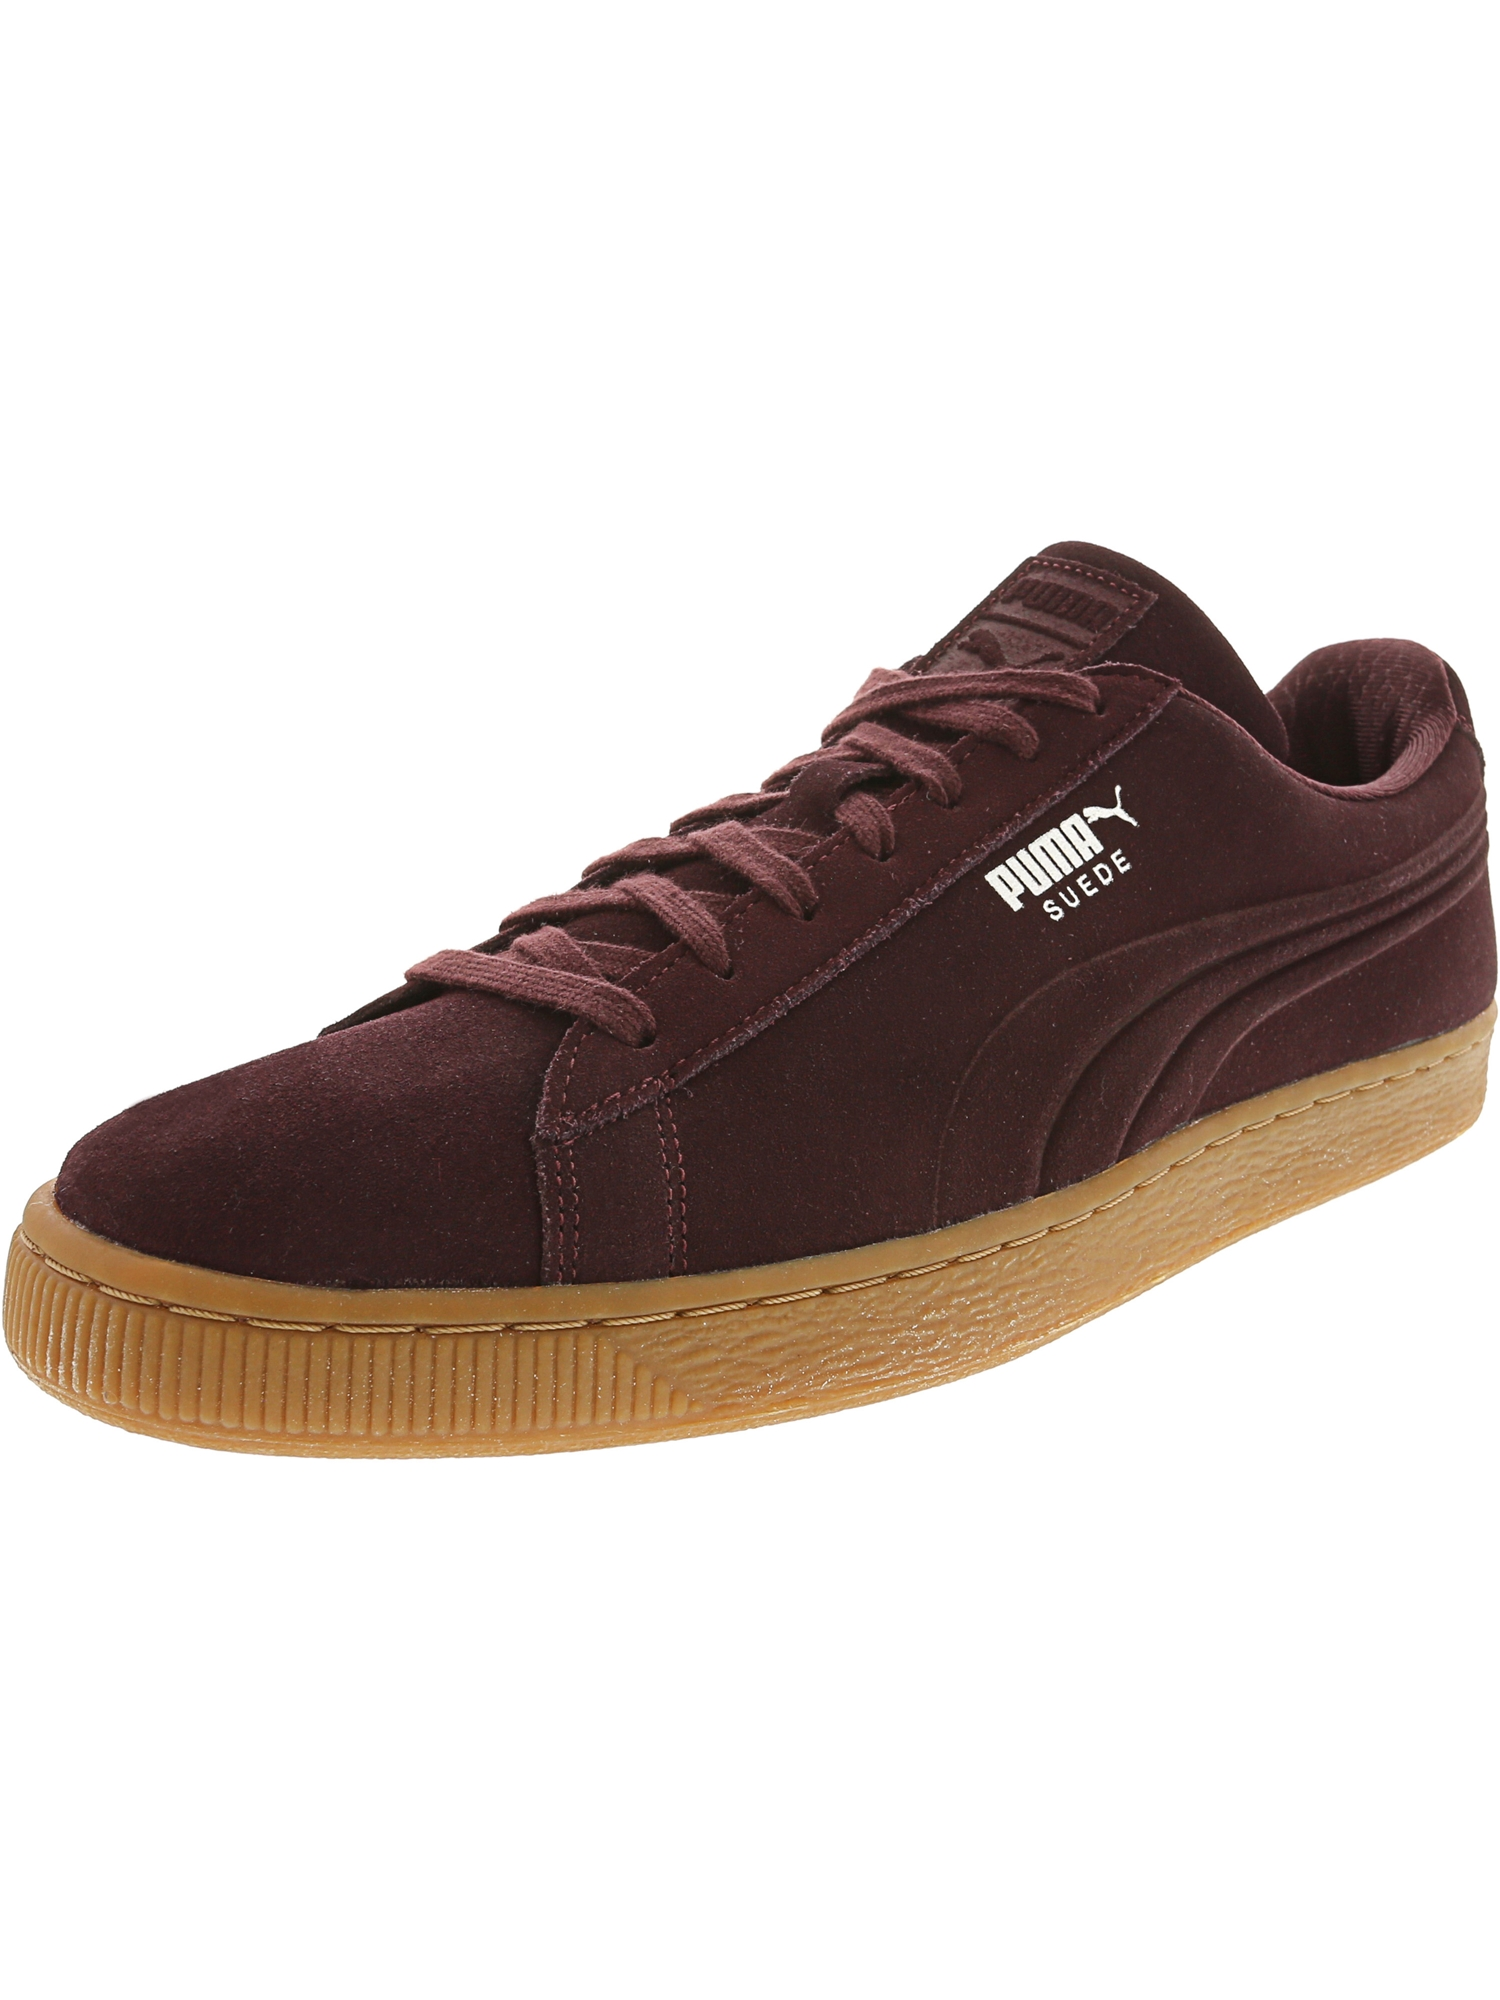 Puma Men's Suede Classic Debossed Q4 Winetasting / Lilac Snow Ankle-High Fashion Sneaker - 8M